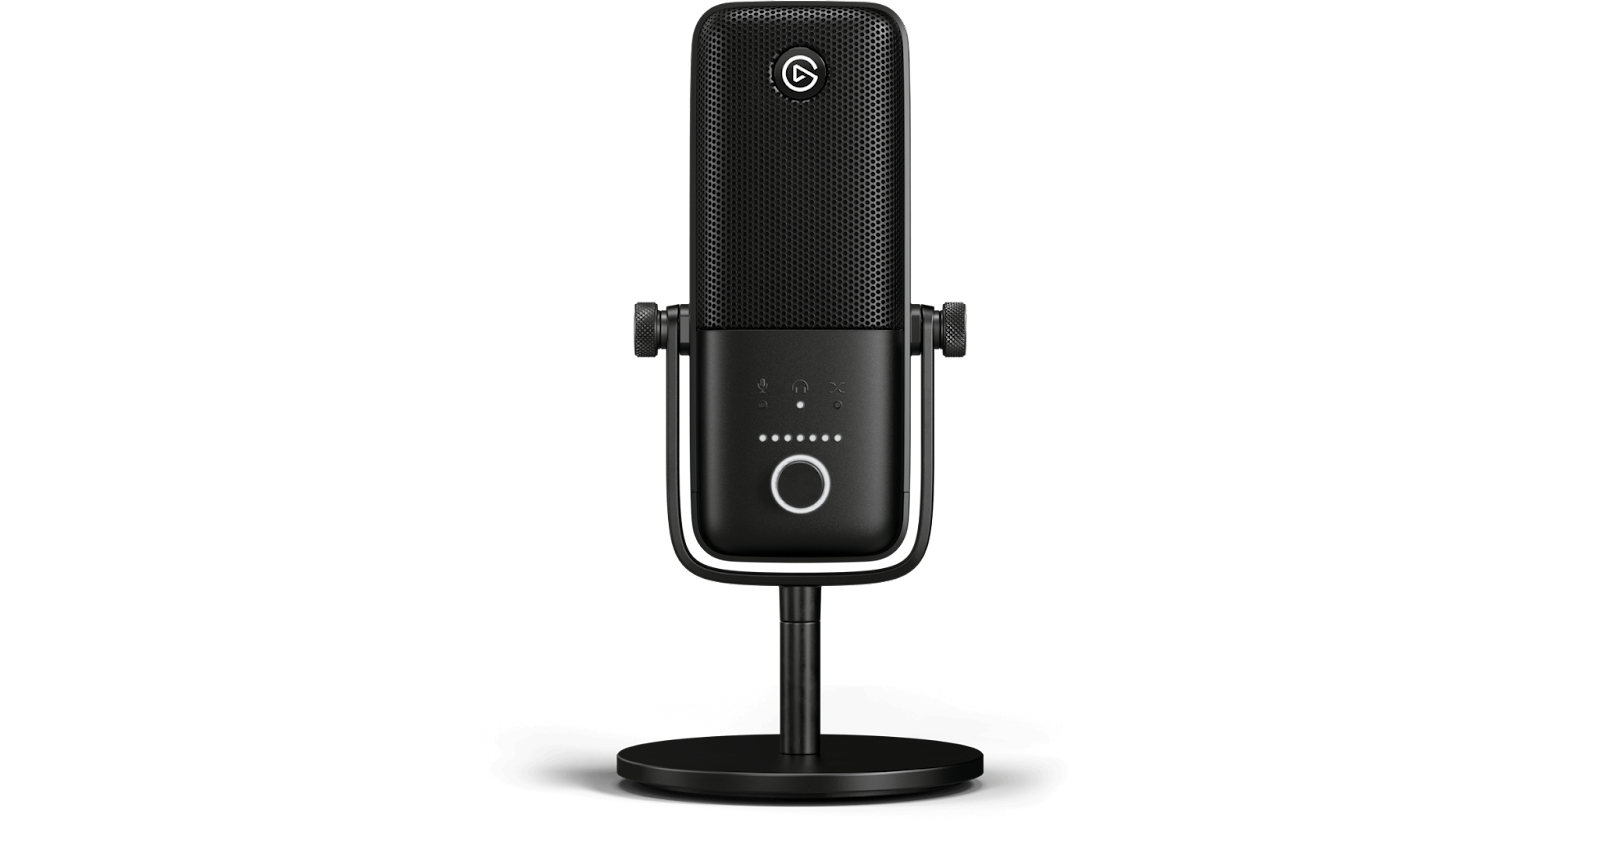 Elgato wave:3 microphone shown on white background for use in remote working for better audio.